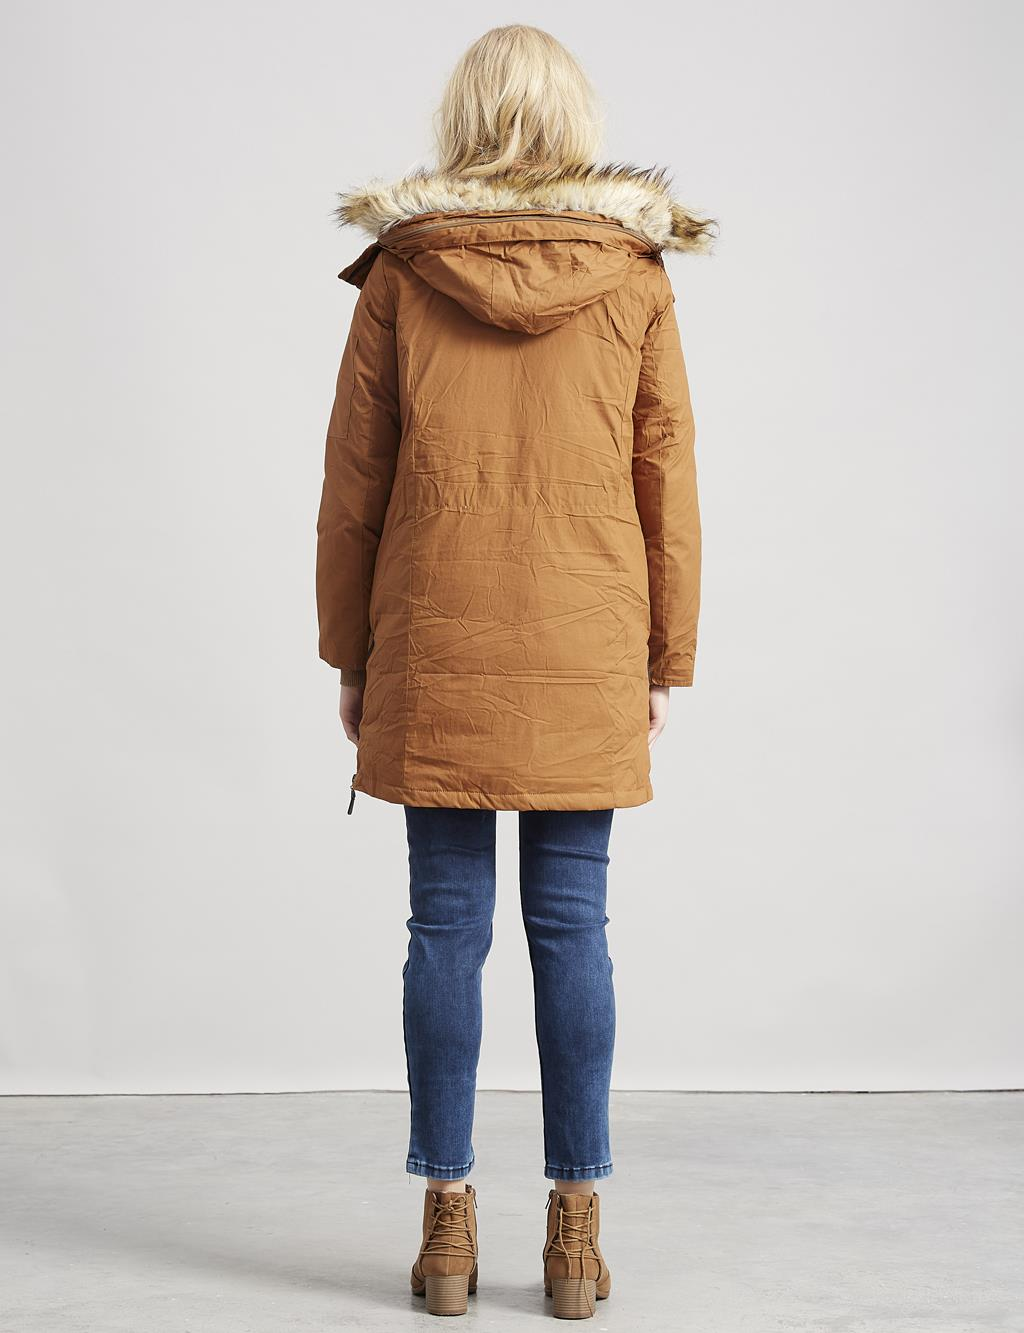 Goose-Quill Coat With Zipper Camel A7 24011